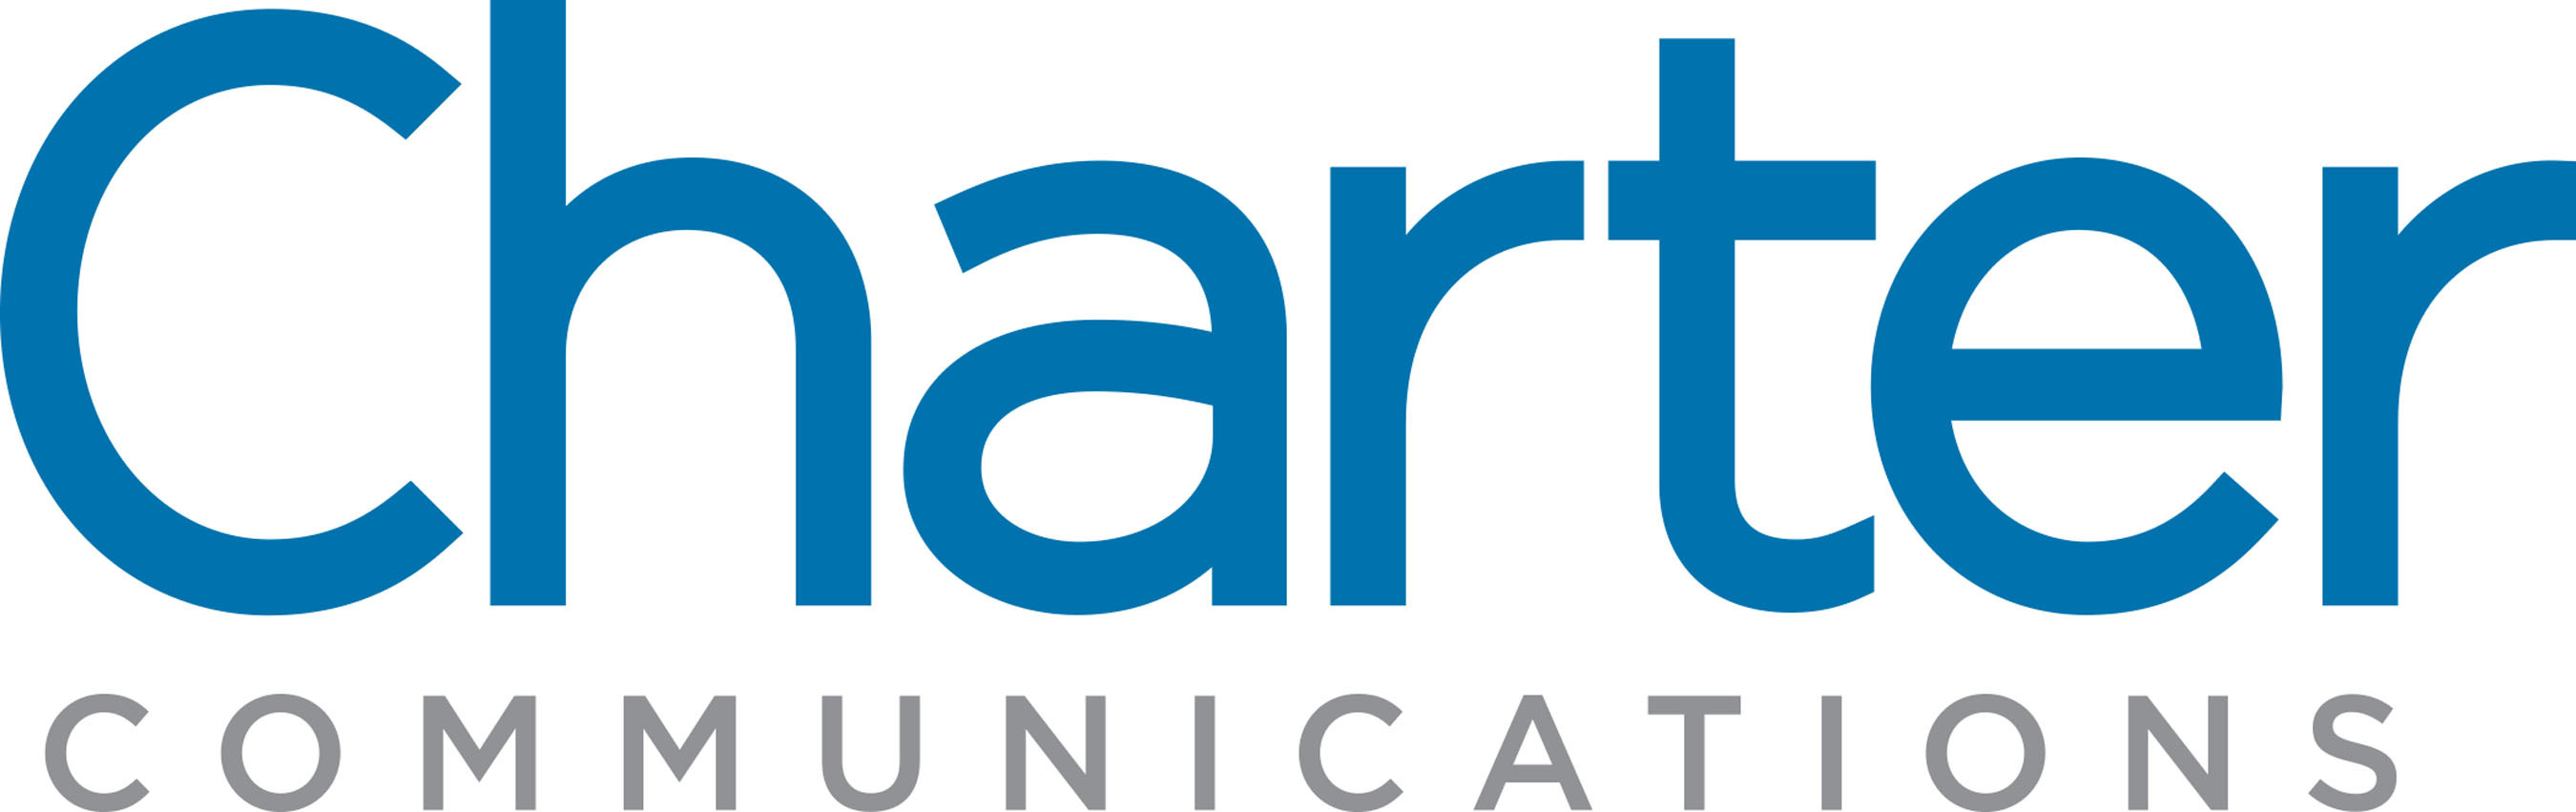 Charter Communications Logo.